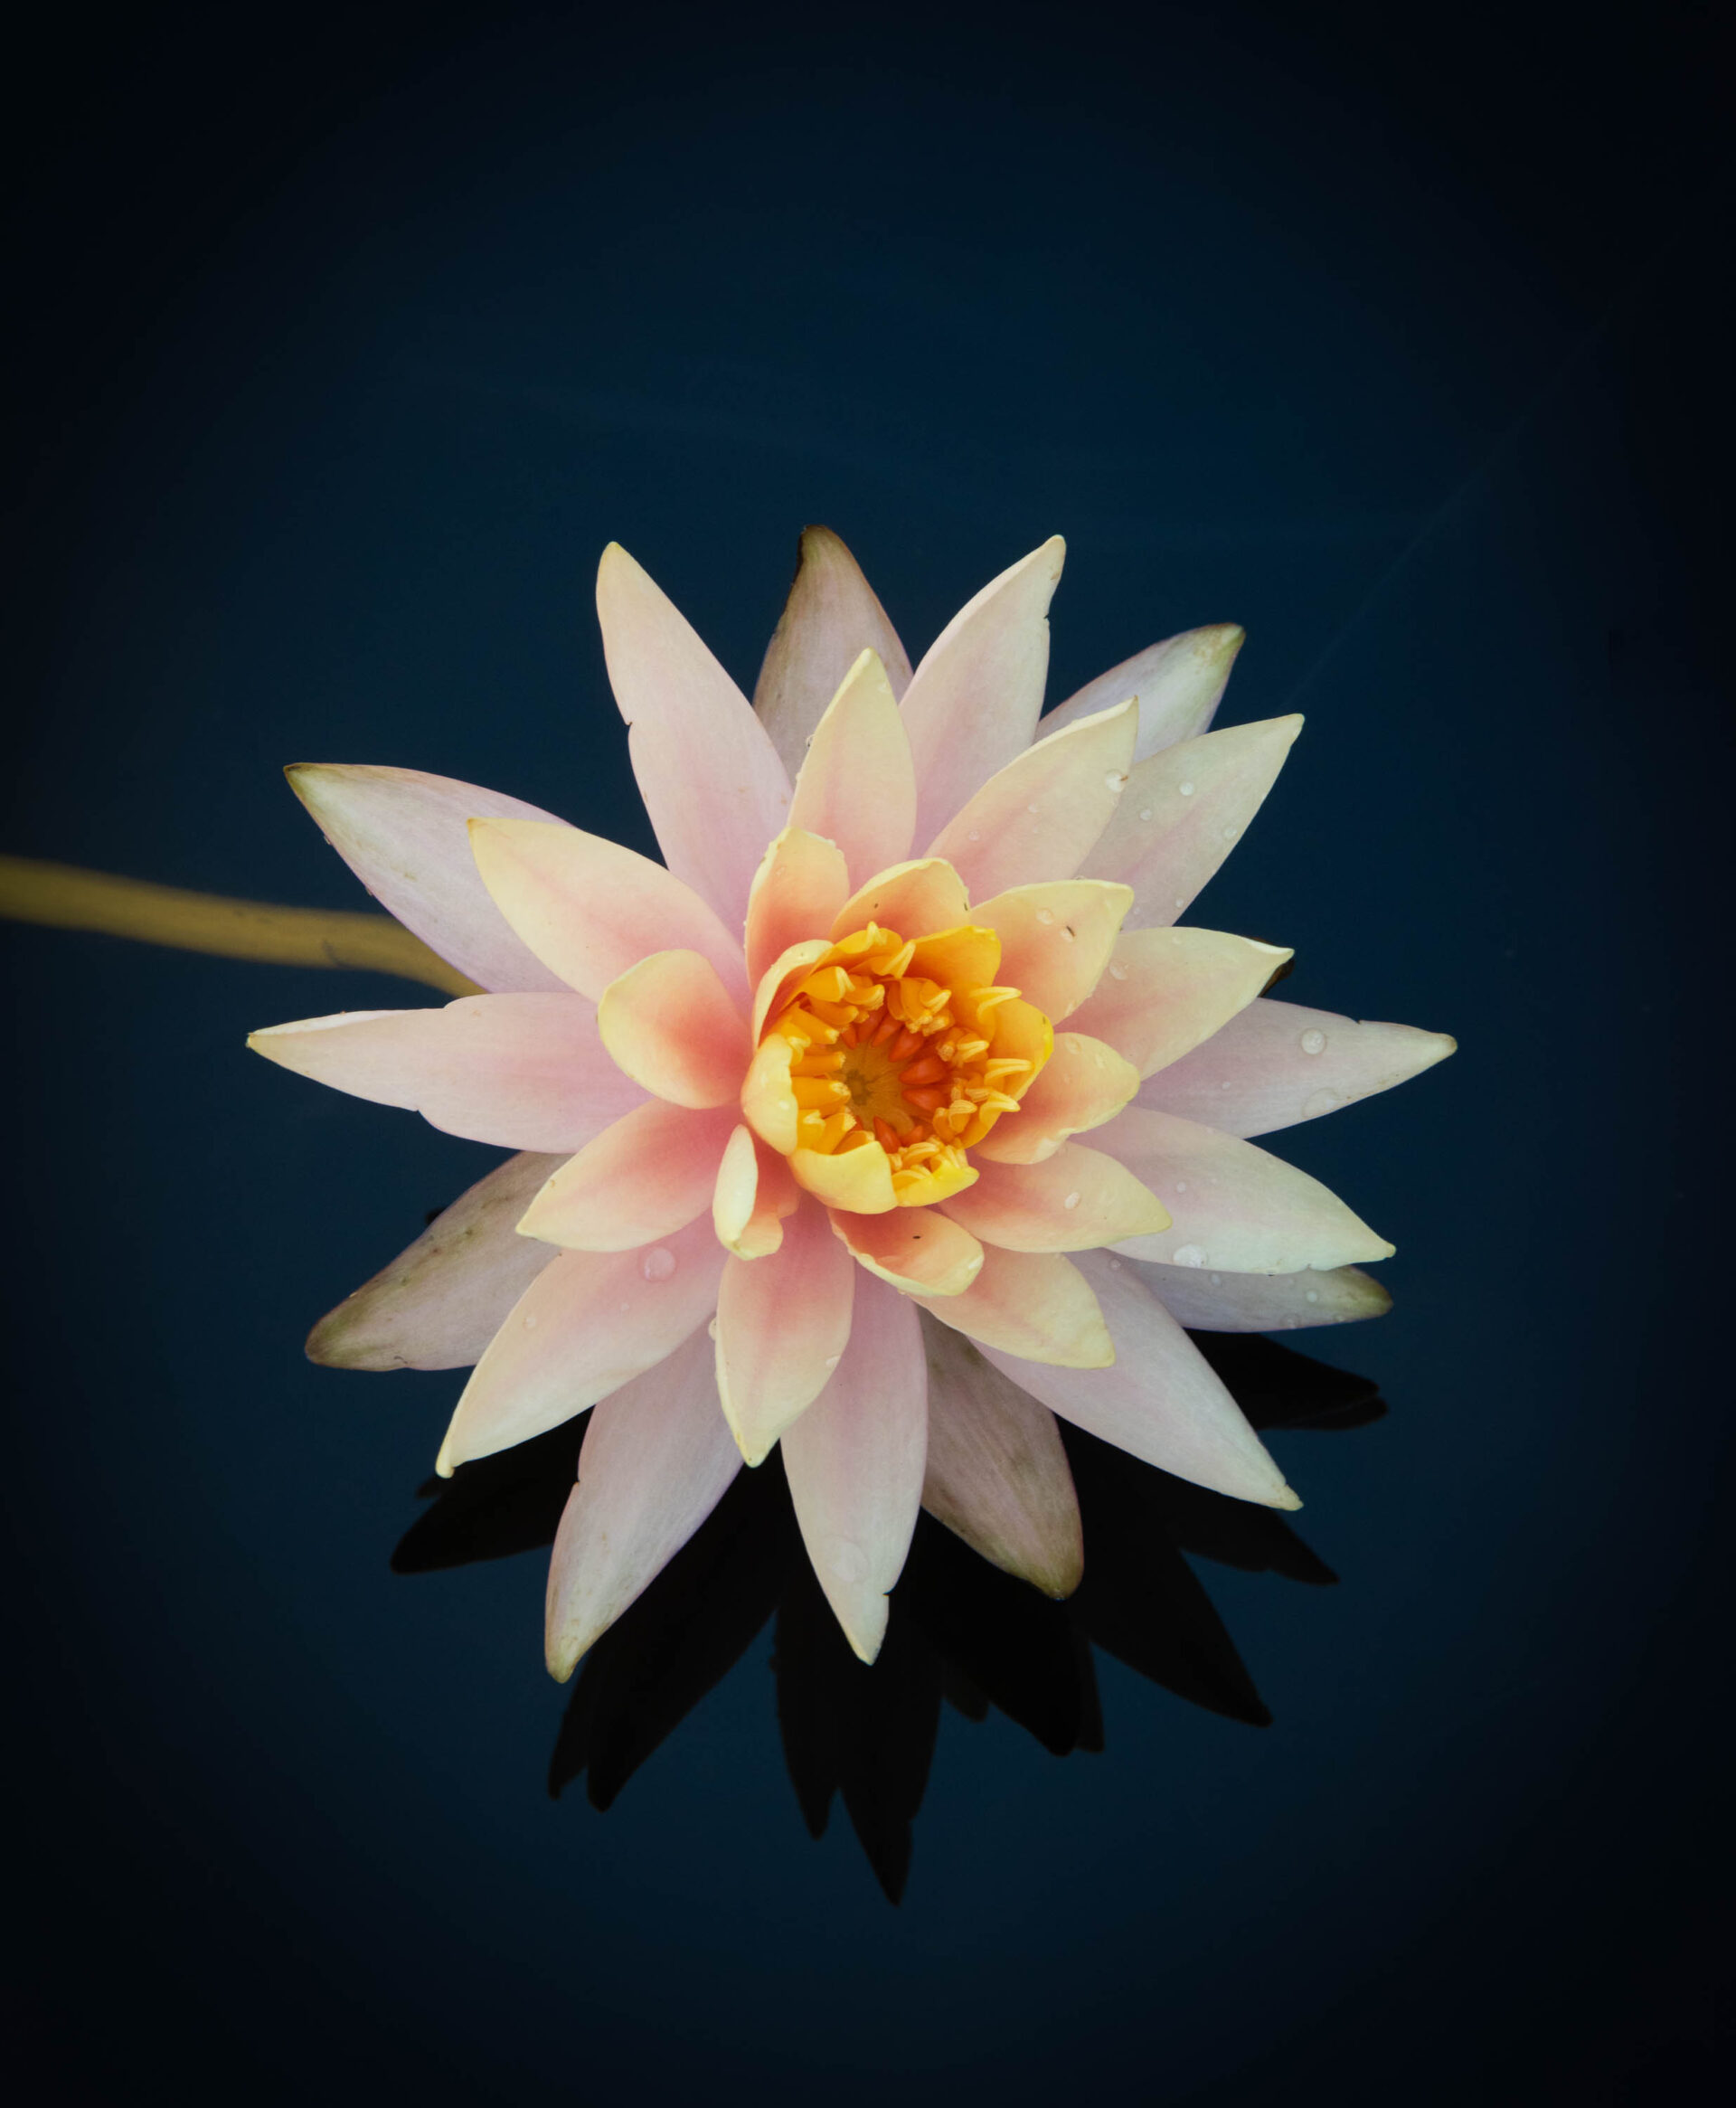 Photograph of a single peach colored water lilly